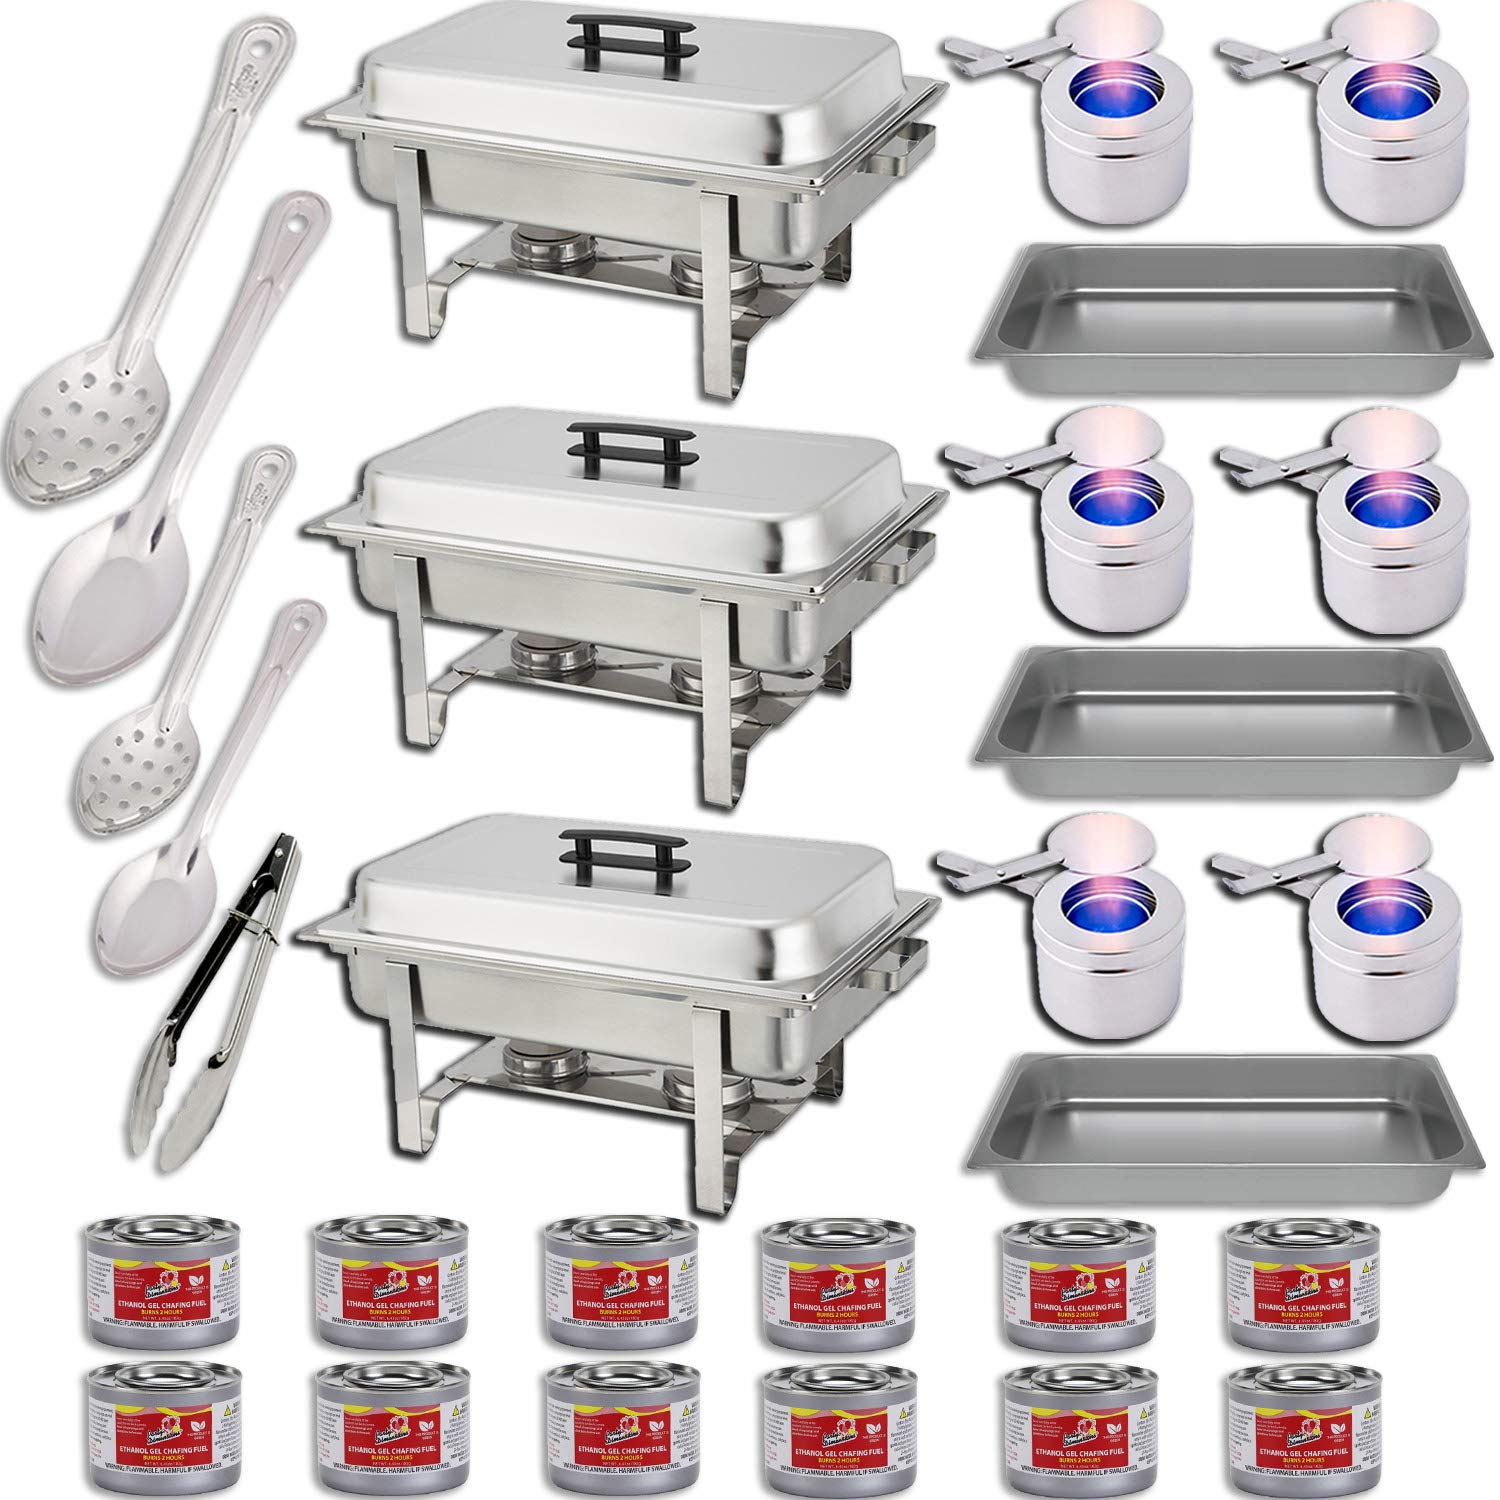 Chafing Dish Buffet Set w/Fuel - Water Pans + Food Pans 8qt + Frames + Lids + Fuel Holders + 12 Fuel Cans + Serving Utensils, 15'', 11'' Perforated Spoon + 15'', 11'' Solid Spoon + 9'' Tong - 3 Warmer Kit by HeroFiber